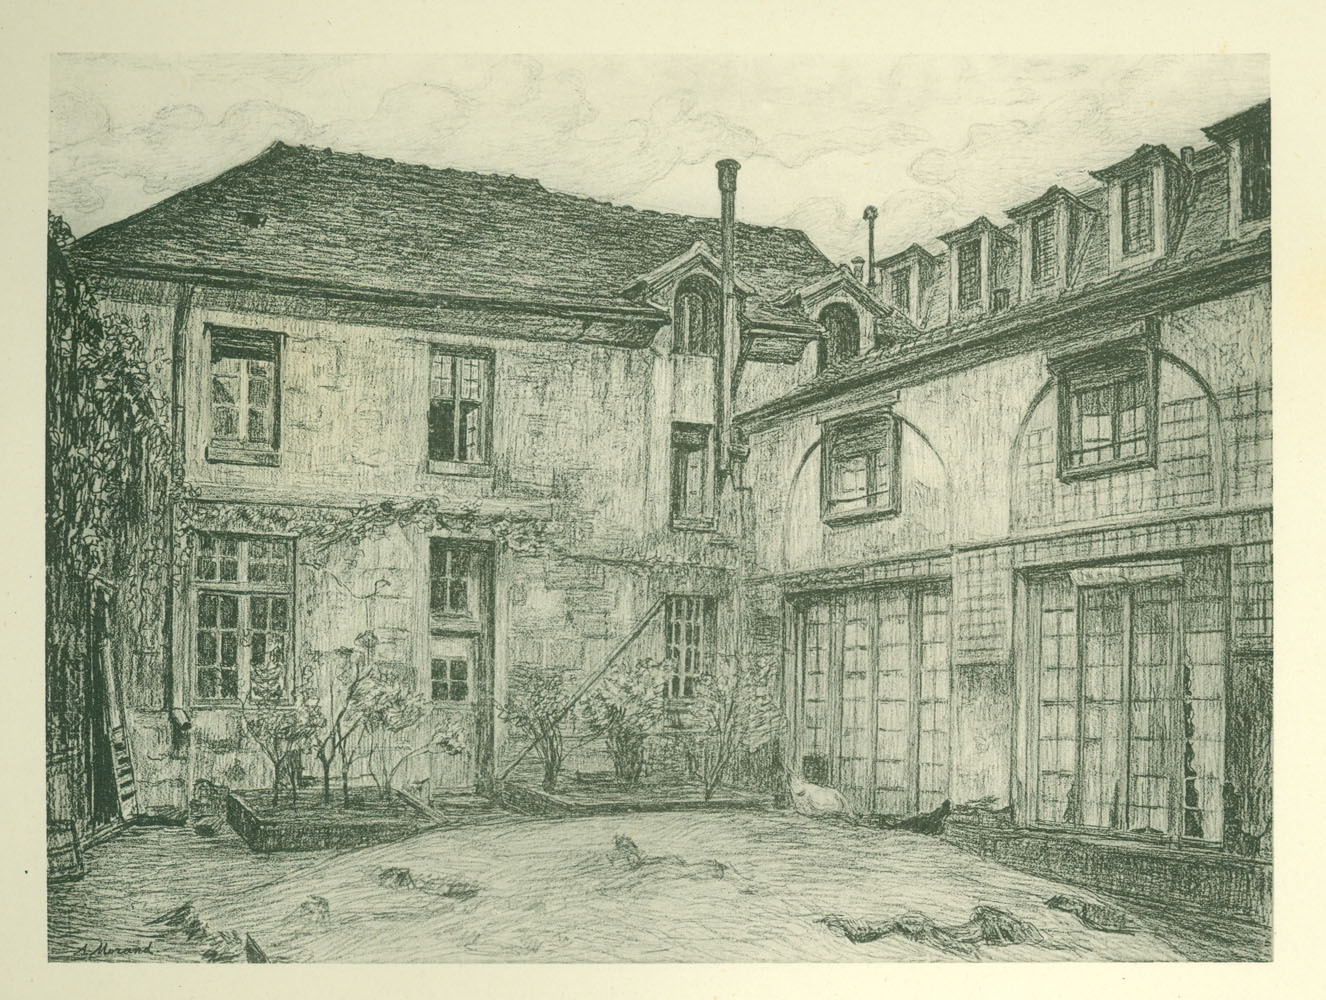 Exterior view, magasin général for the prisons of the Department of the Seine